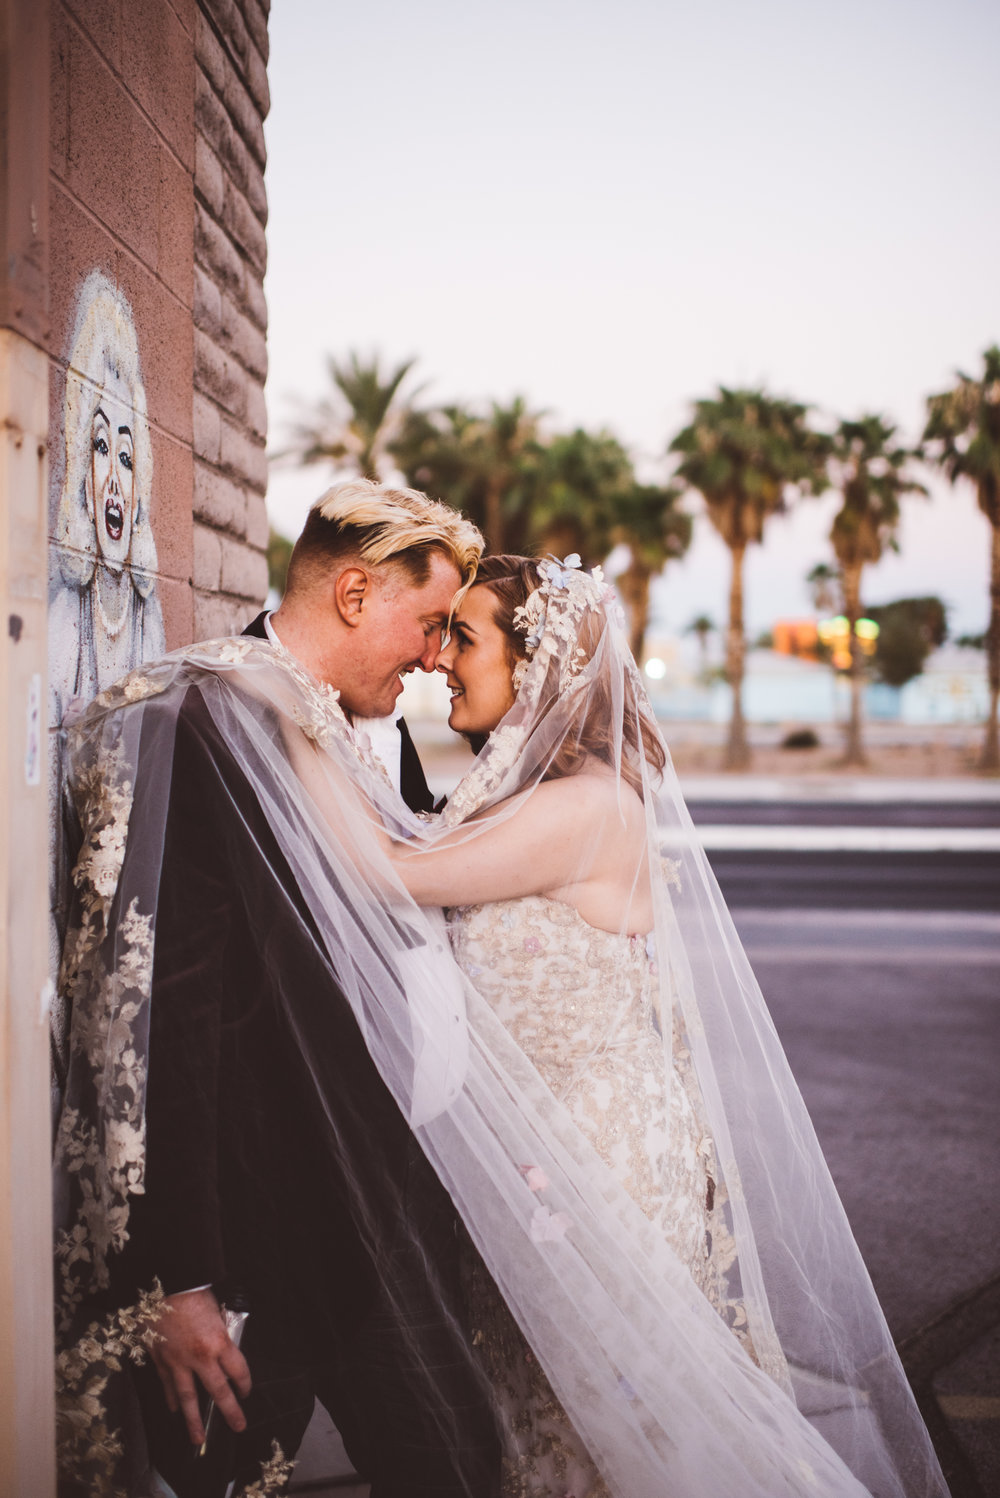 Neon Museum Elopement Elvis Elopement Las Vegas Photography by Ashley Marie-340.jpg